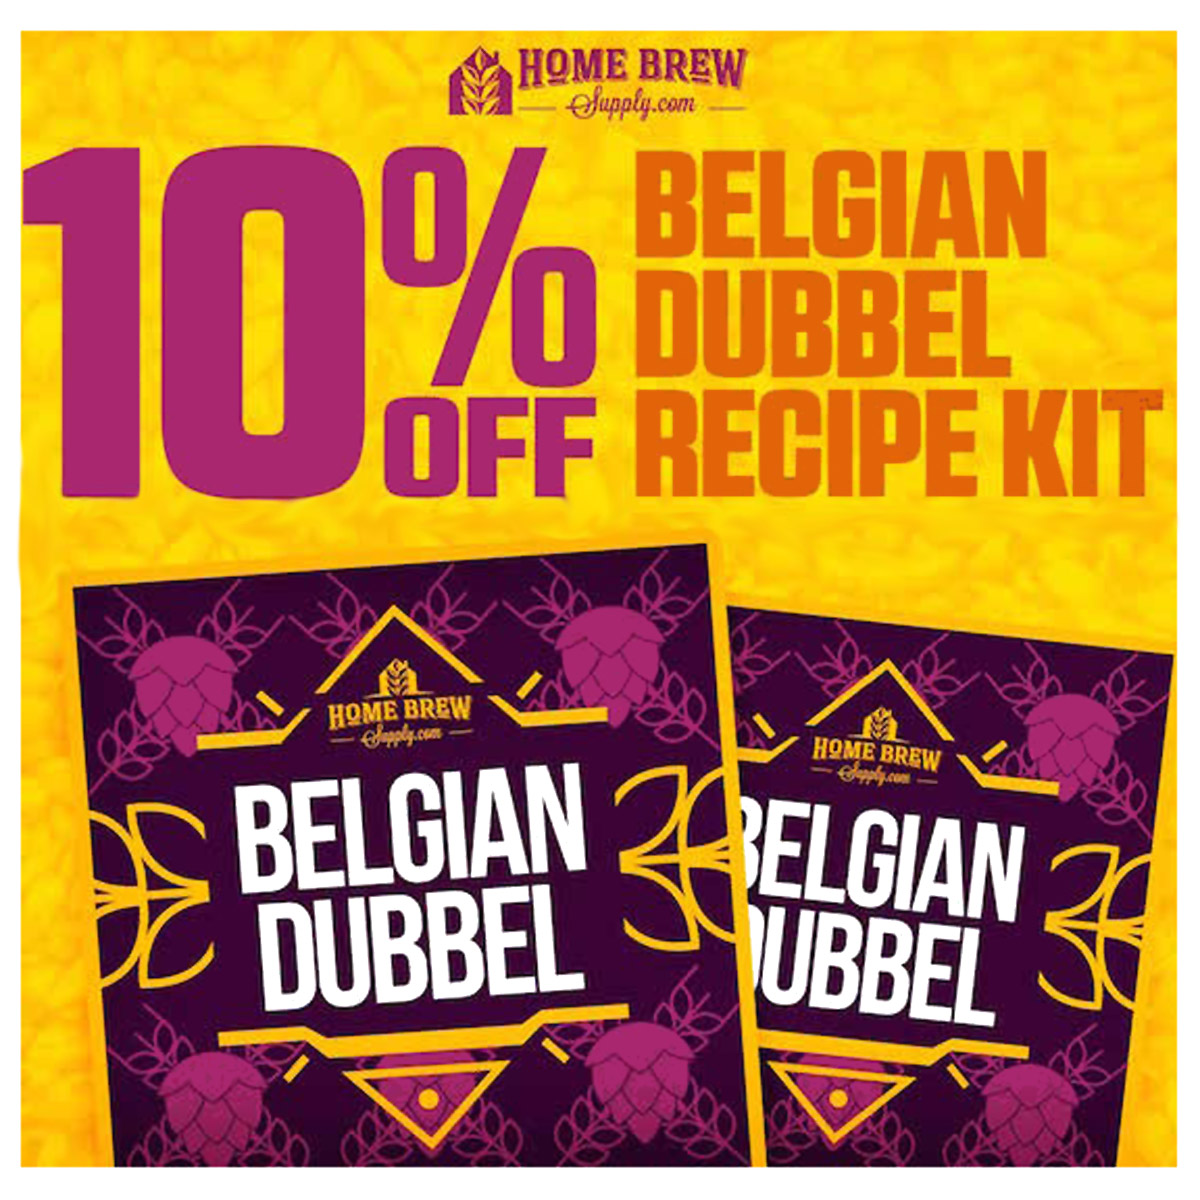 Save 10% On A Belgian Dubbel Recipe Kit Promo Codes